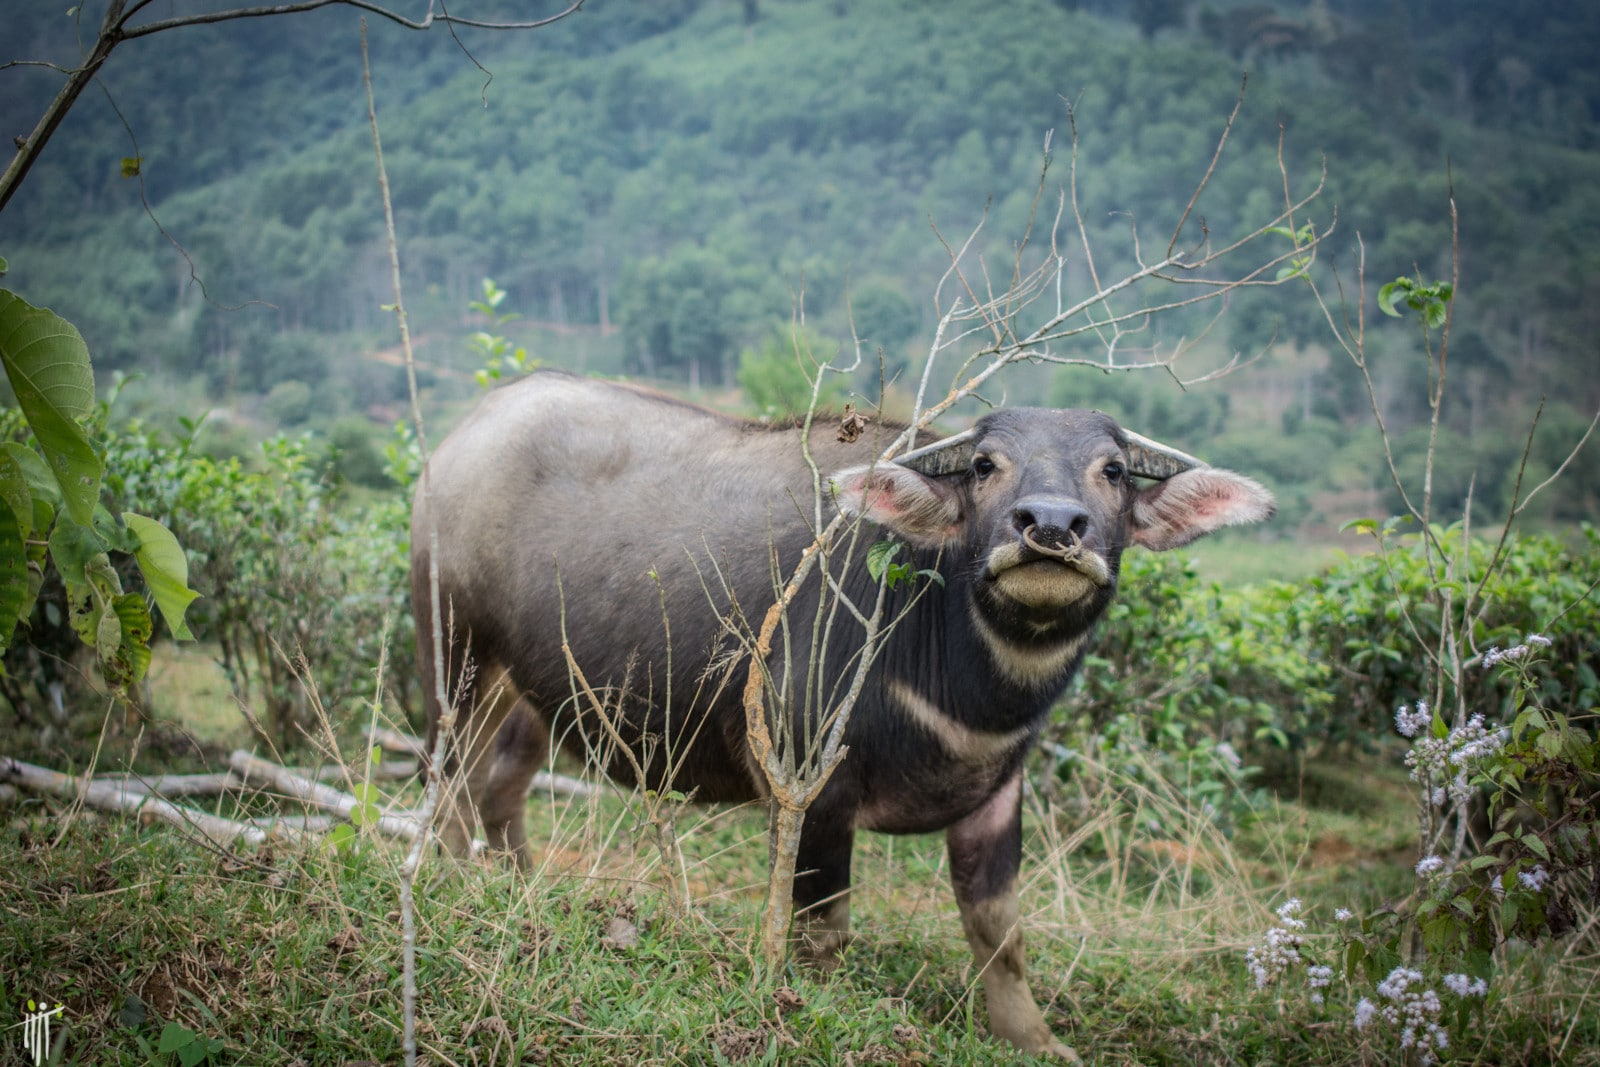 Image of a wild animal in the Pu Mat National Park in Vietnam